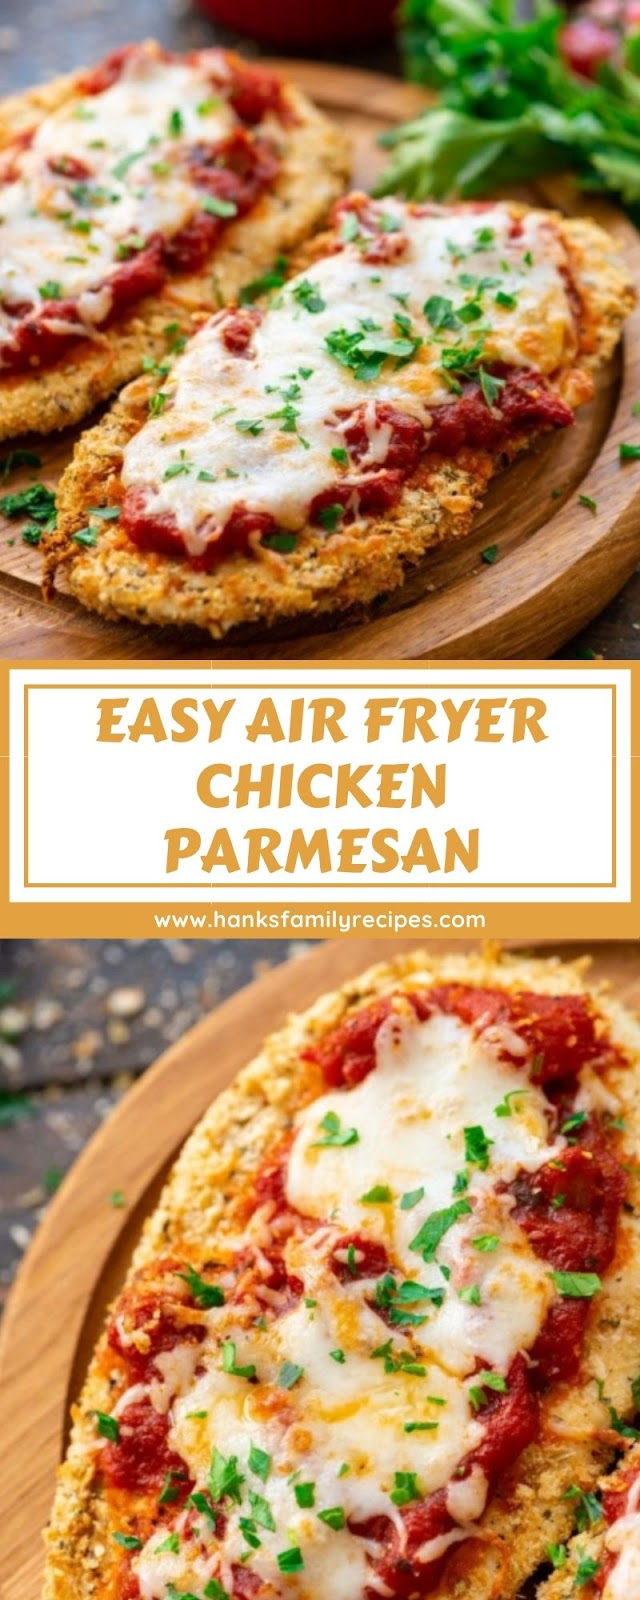 EASY AIR FRYER CHICKEN PARMESAN